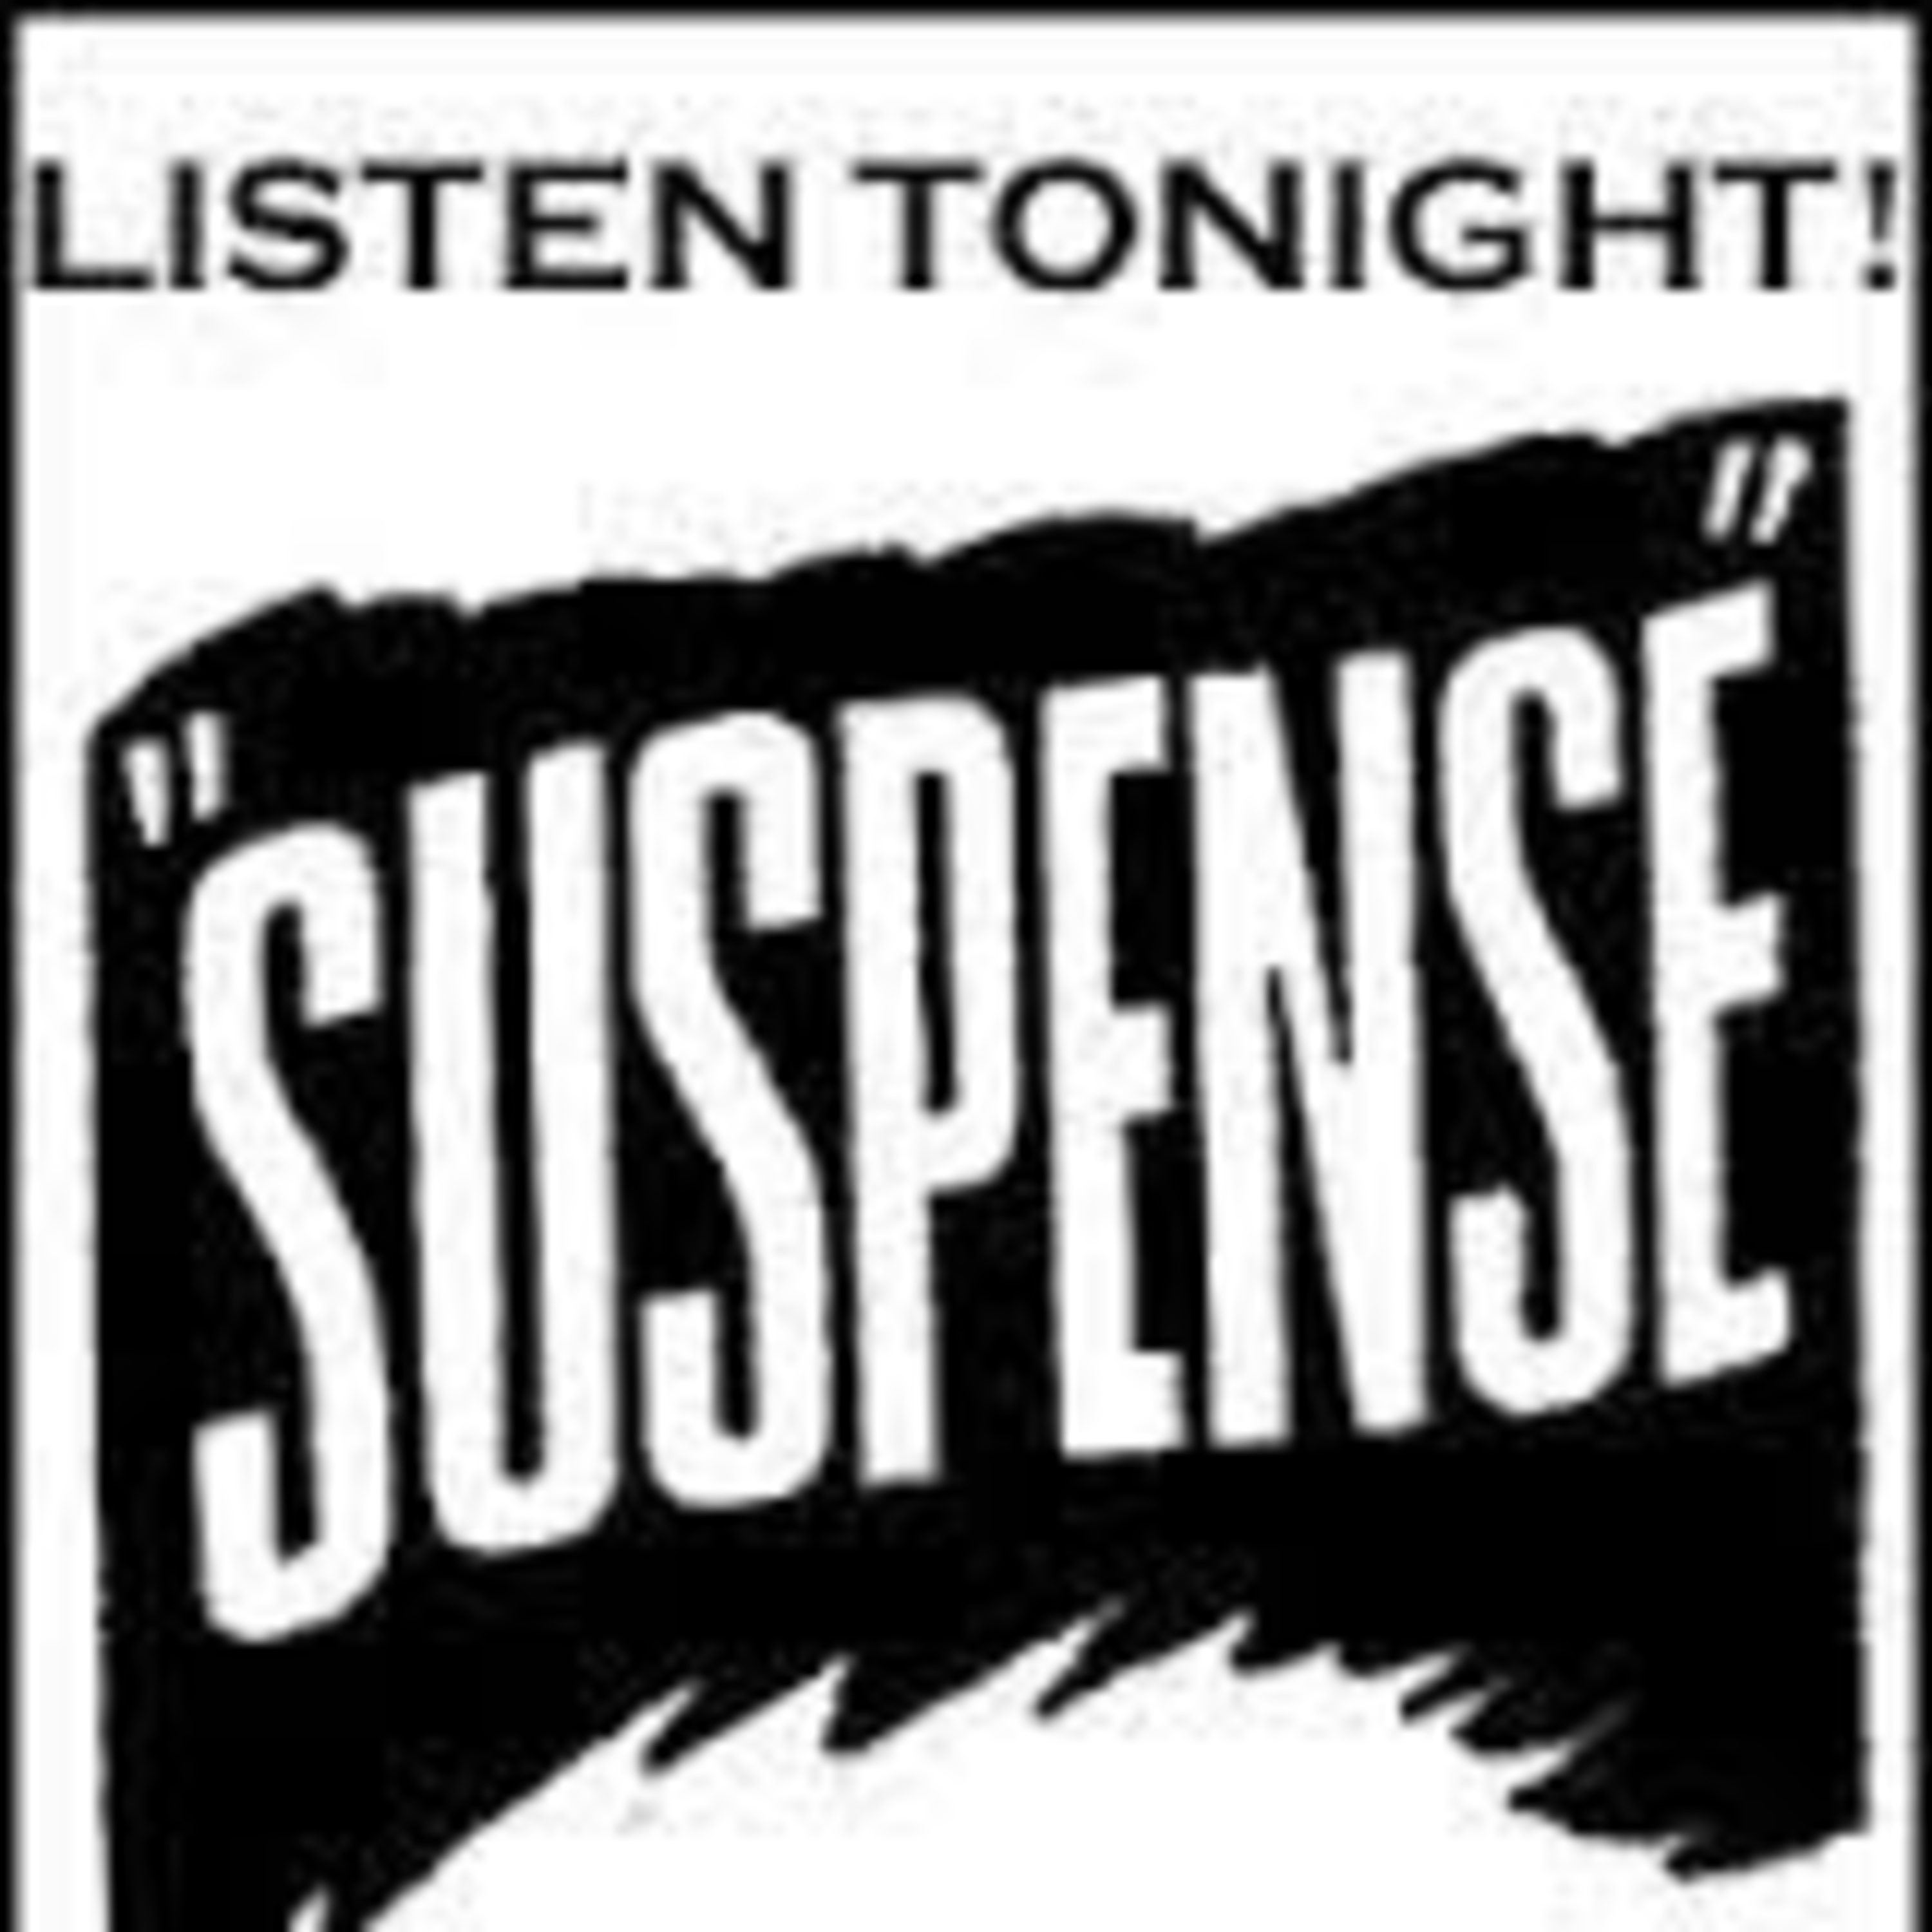 The Suspense Podcast - The Women in Red - Cat and Mouse - A Tale Well Calculated to Keep You In Suspense